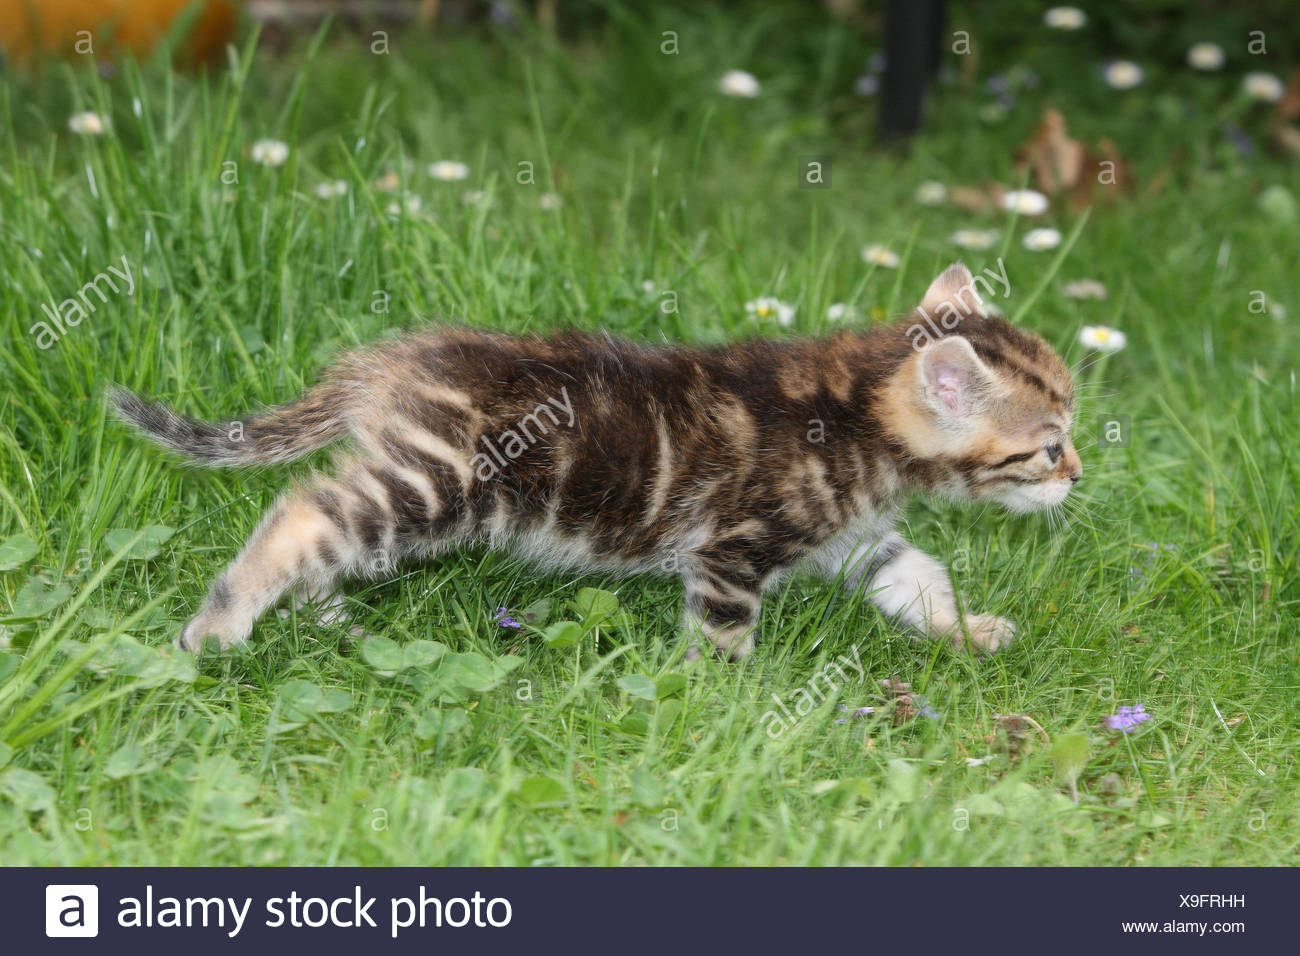 Cat, young, run, side view, meadow, garden, animals, mammals, pets, small cats, Felidae, domesticates, house cat, young animal, kitten, striped, small, awkward, clumsy, helplessly, sweetly, motion, individually, only, young animals, animal baby, nature, outside, motion blur, - Stock Image